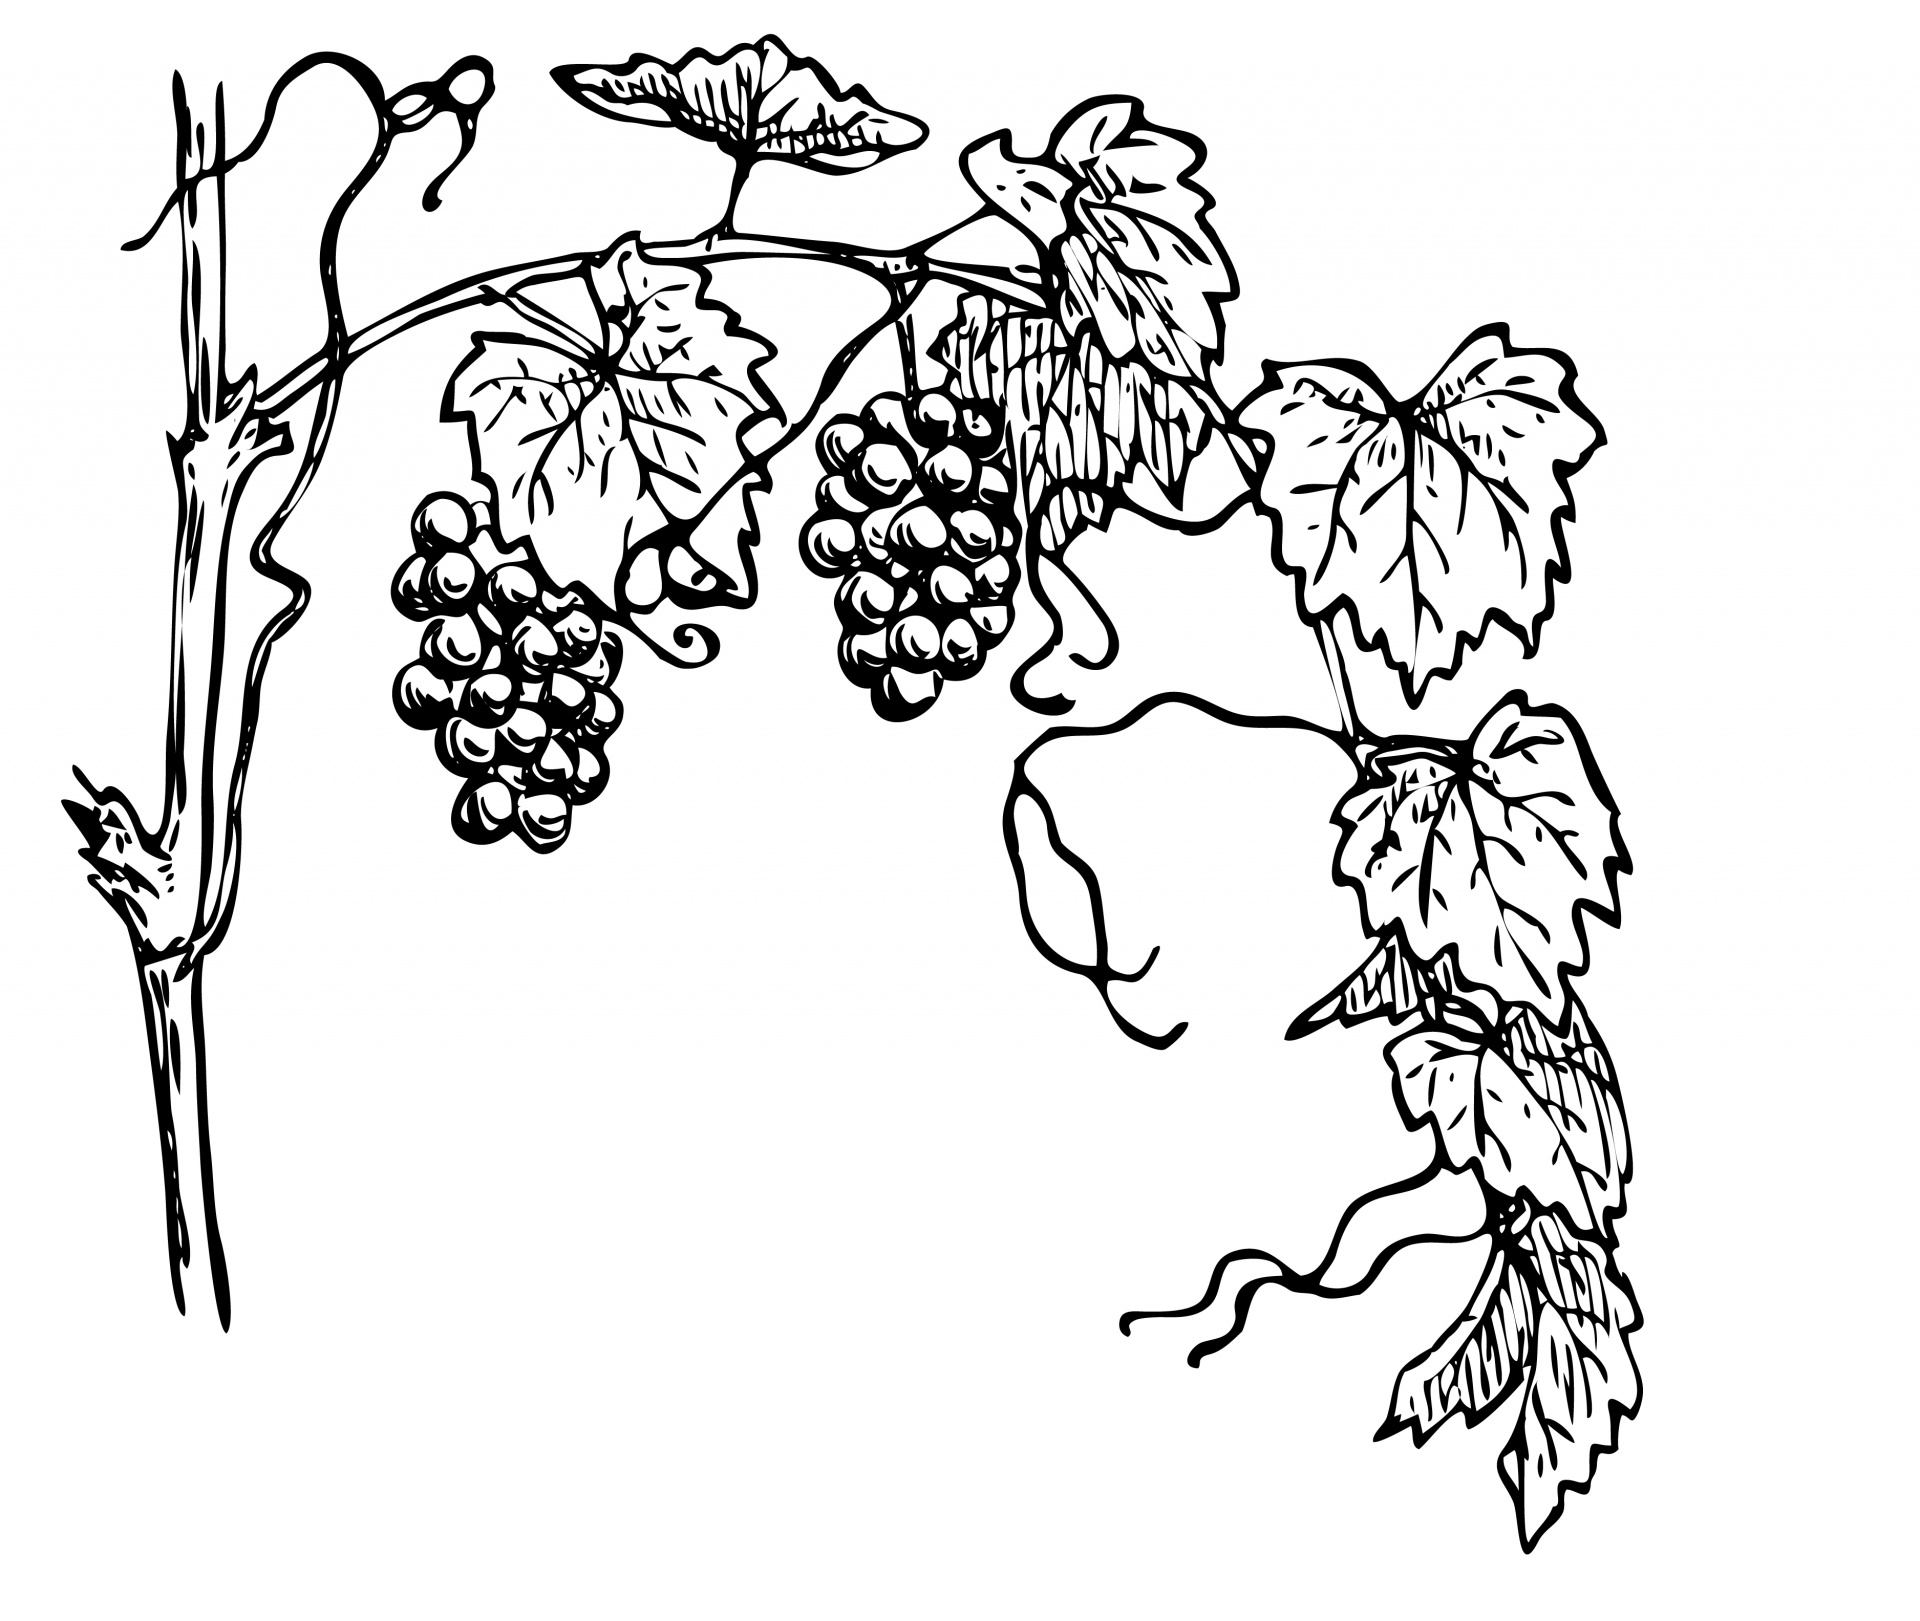 Grapevine clipart. Illustration free stock photo